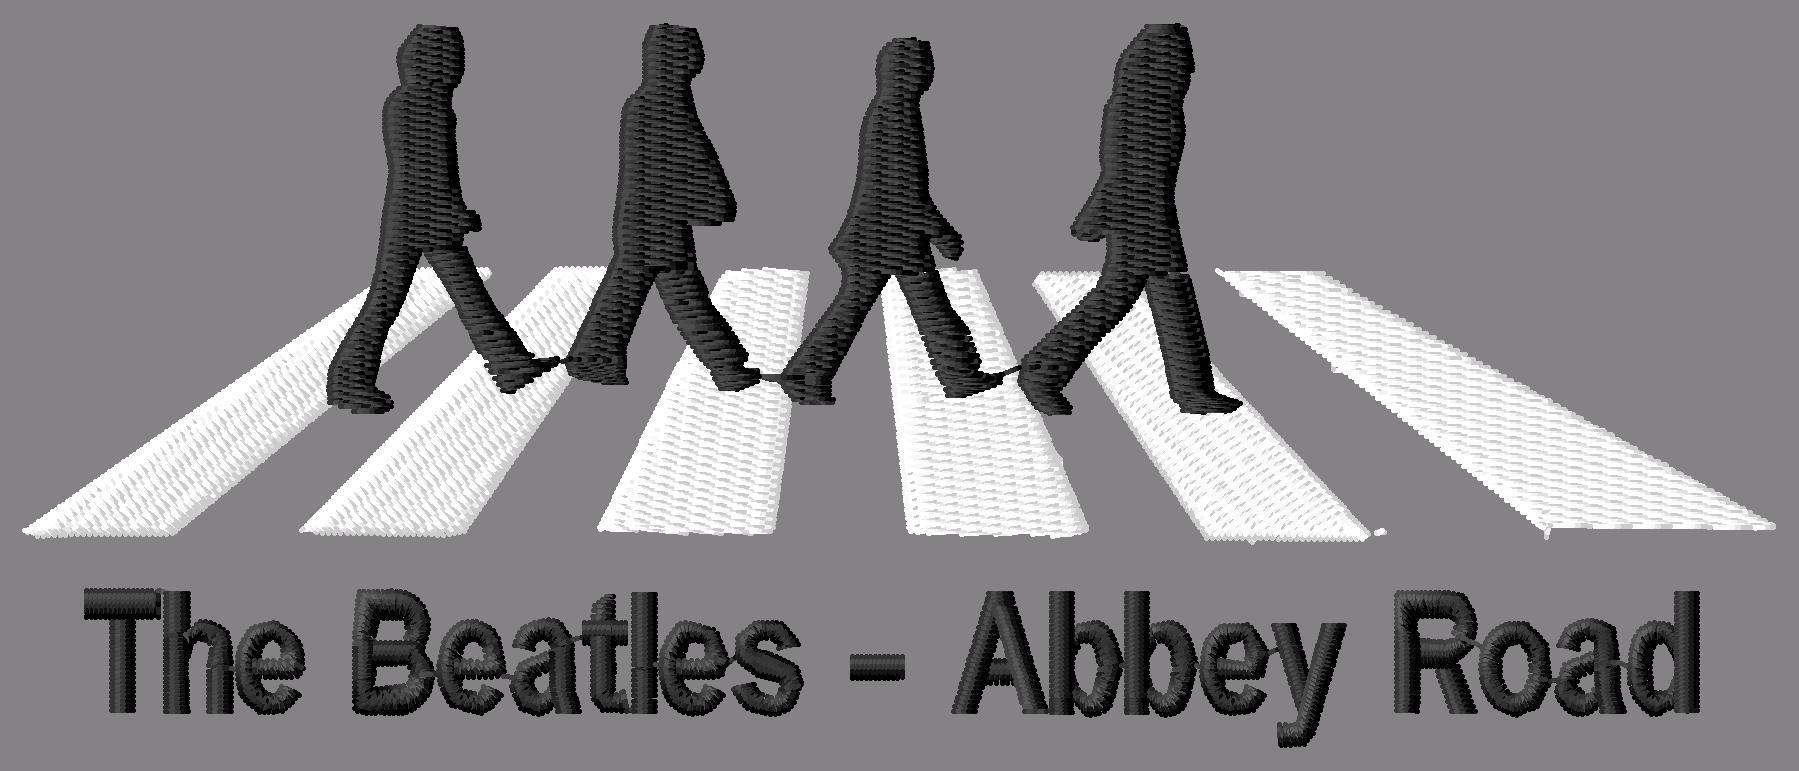 The Beatles Abbey Road Embroidery Design